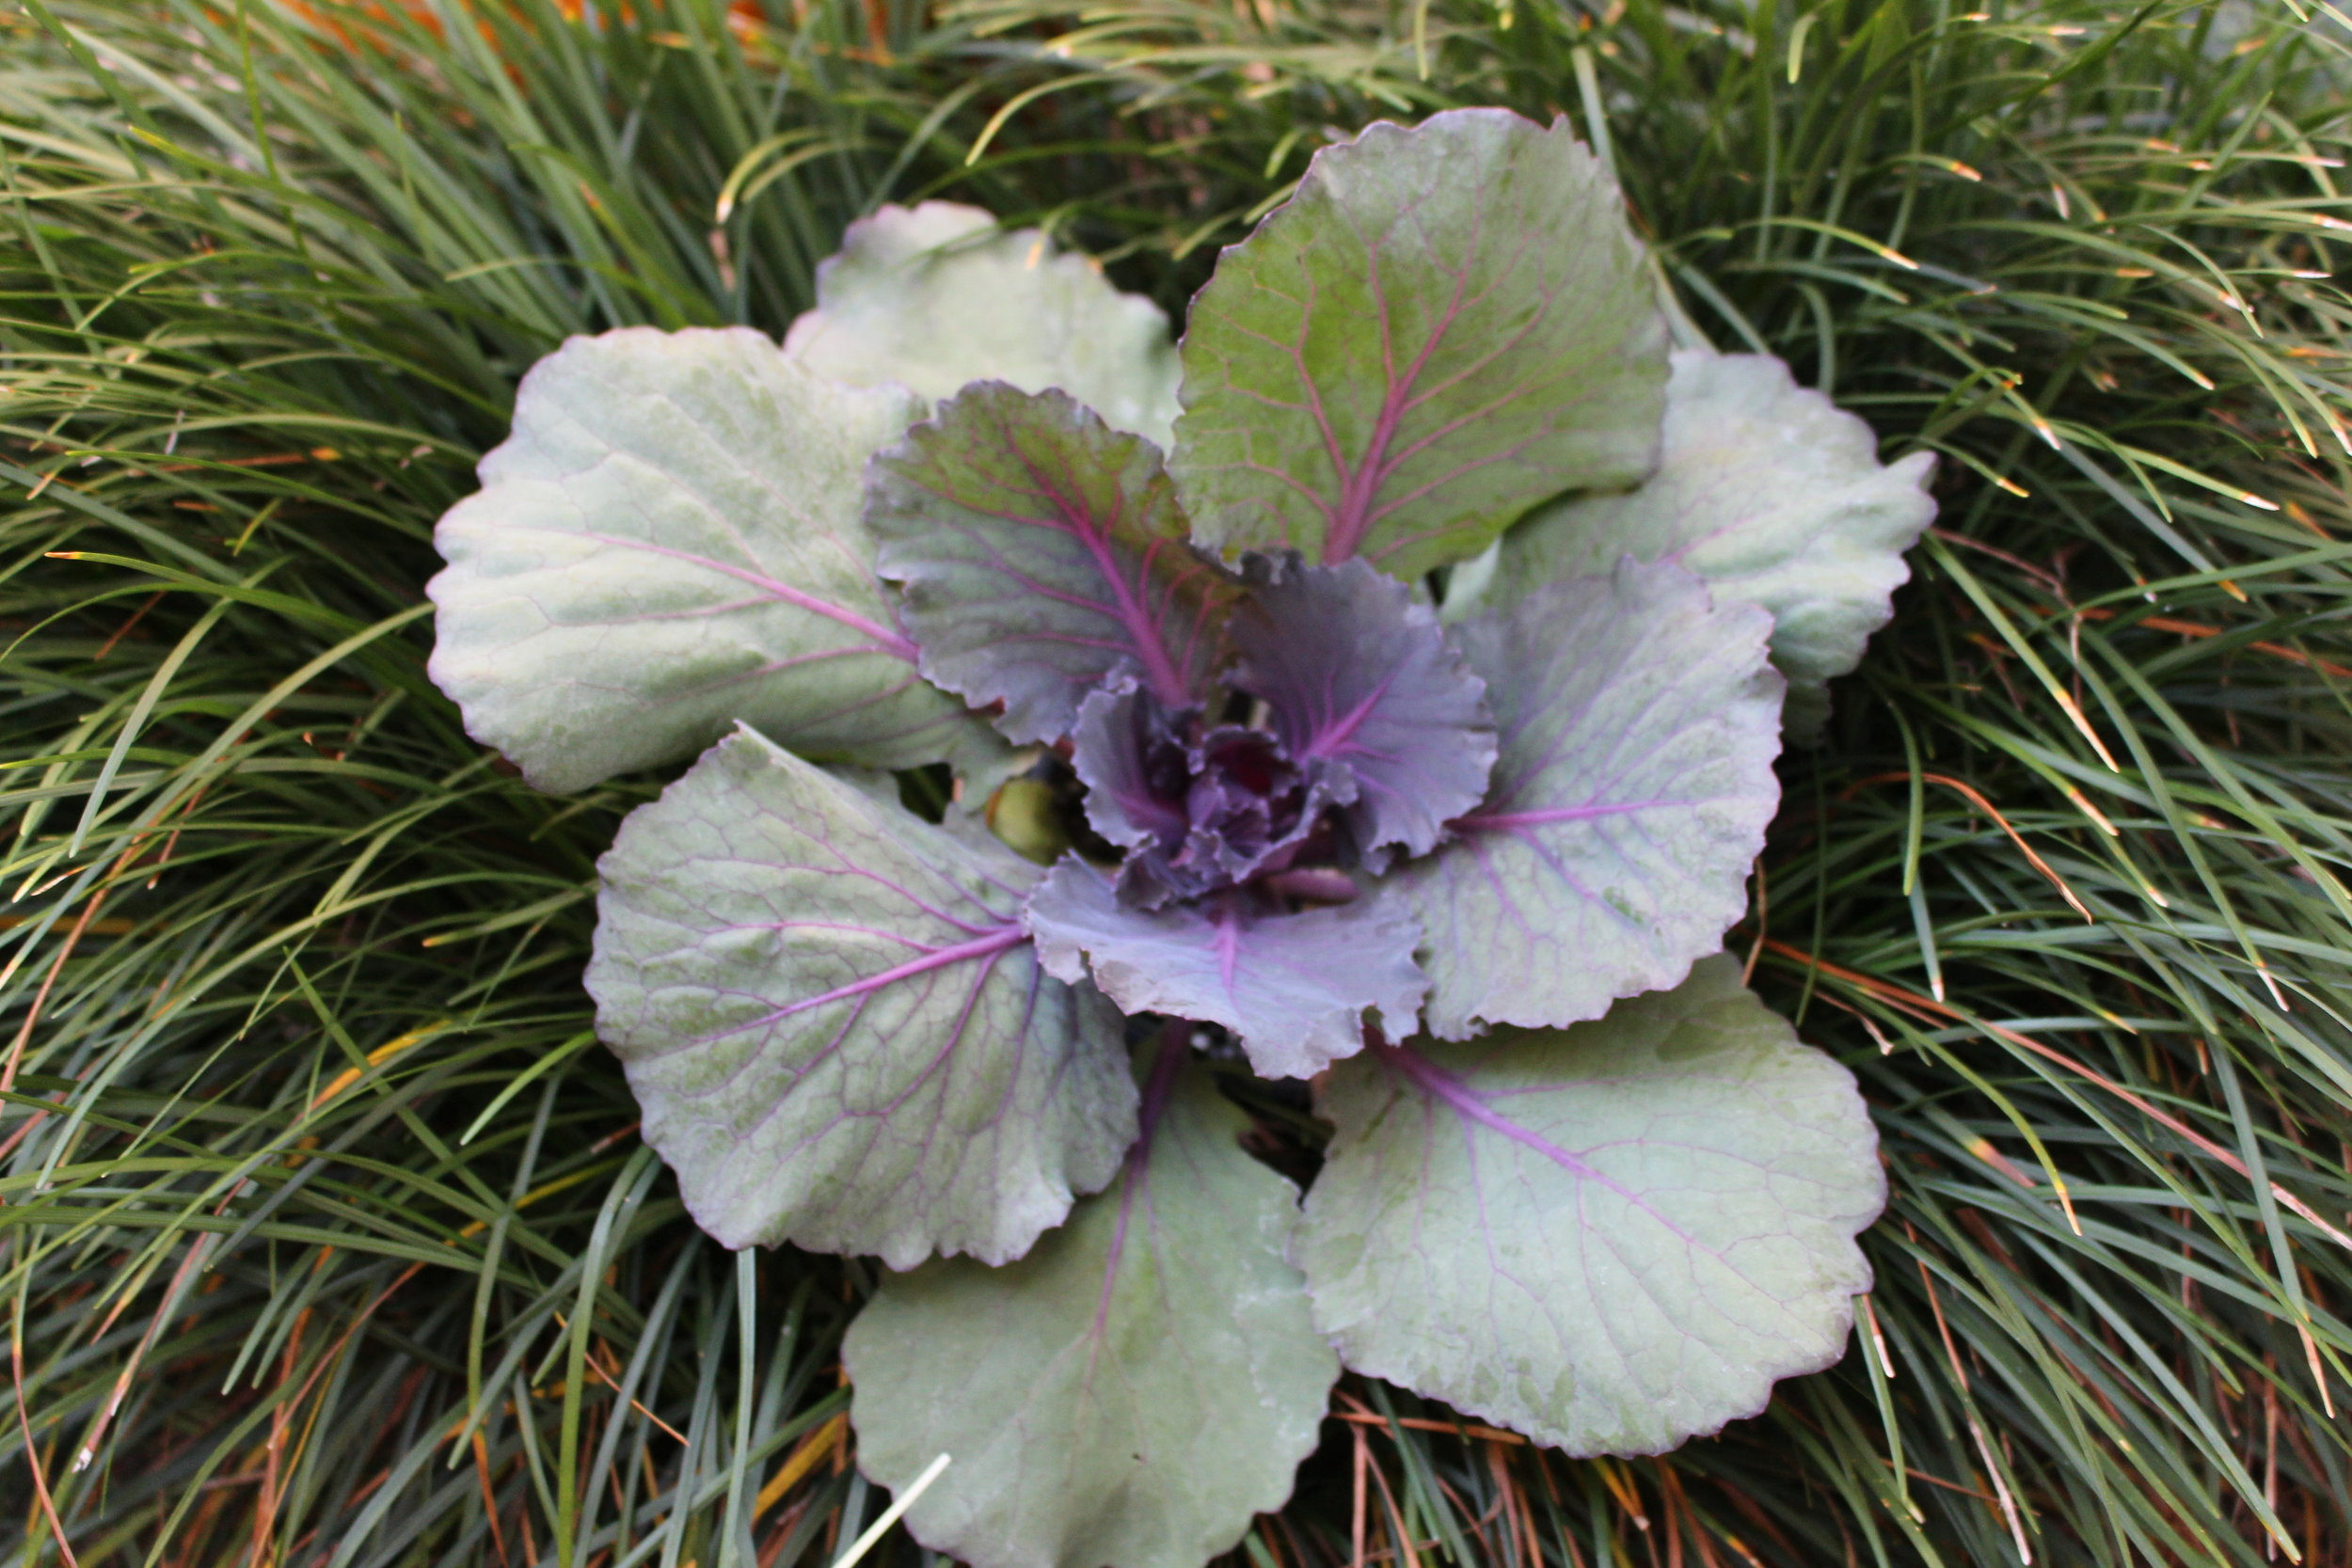 Ornamental Cabbage and Kale, cousins to the edible cabbage and kale are good complements planted along with Fall Mums and pansies. They are a great choice for mixed container gardening as well as landscape beds.